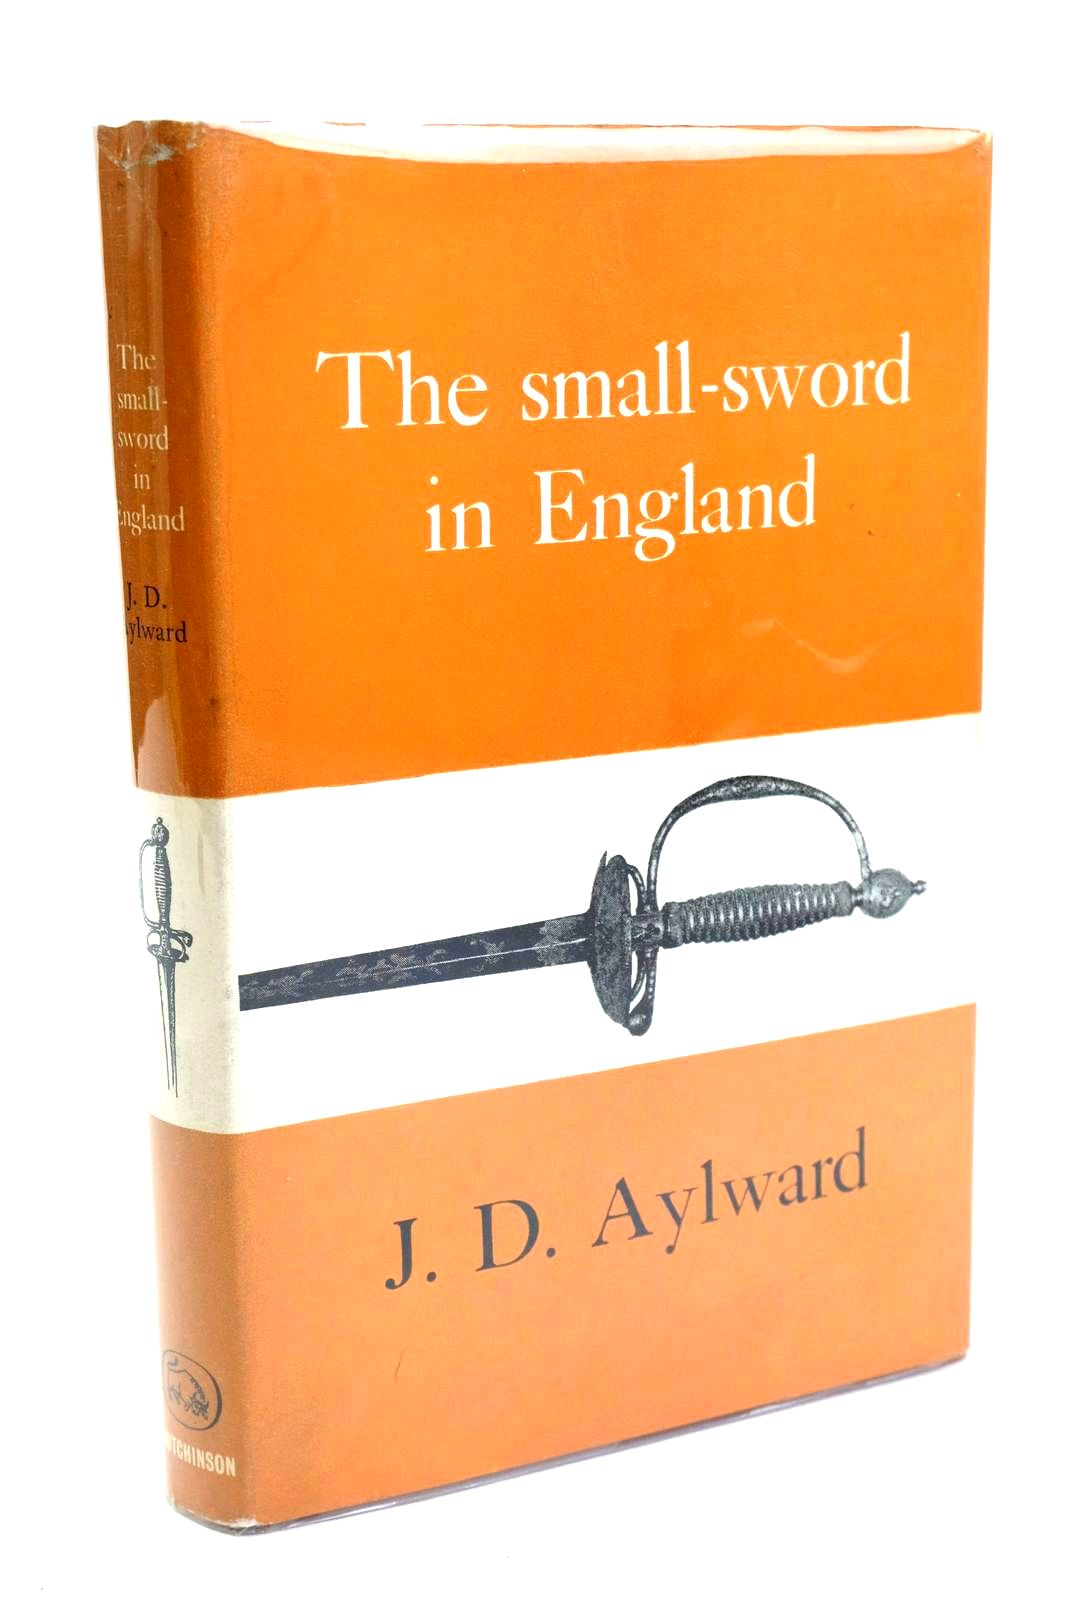 Photo of THE SMALL-SWORD IN ENGLAND written by Aylward, J.D. published by Hutchinson & Co. Ltd (STOCK CODE: 1320209)  for sale by Stella & Rose's Books